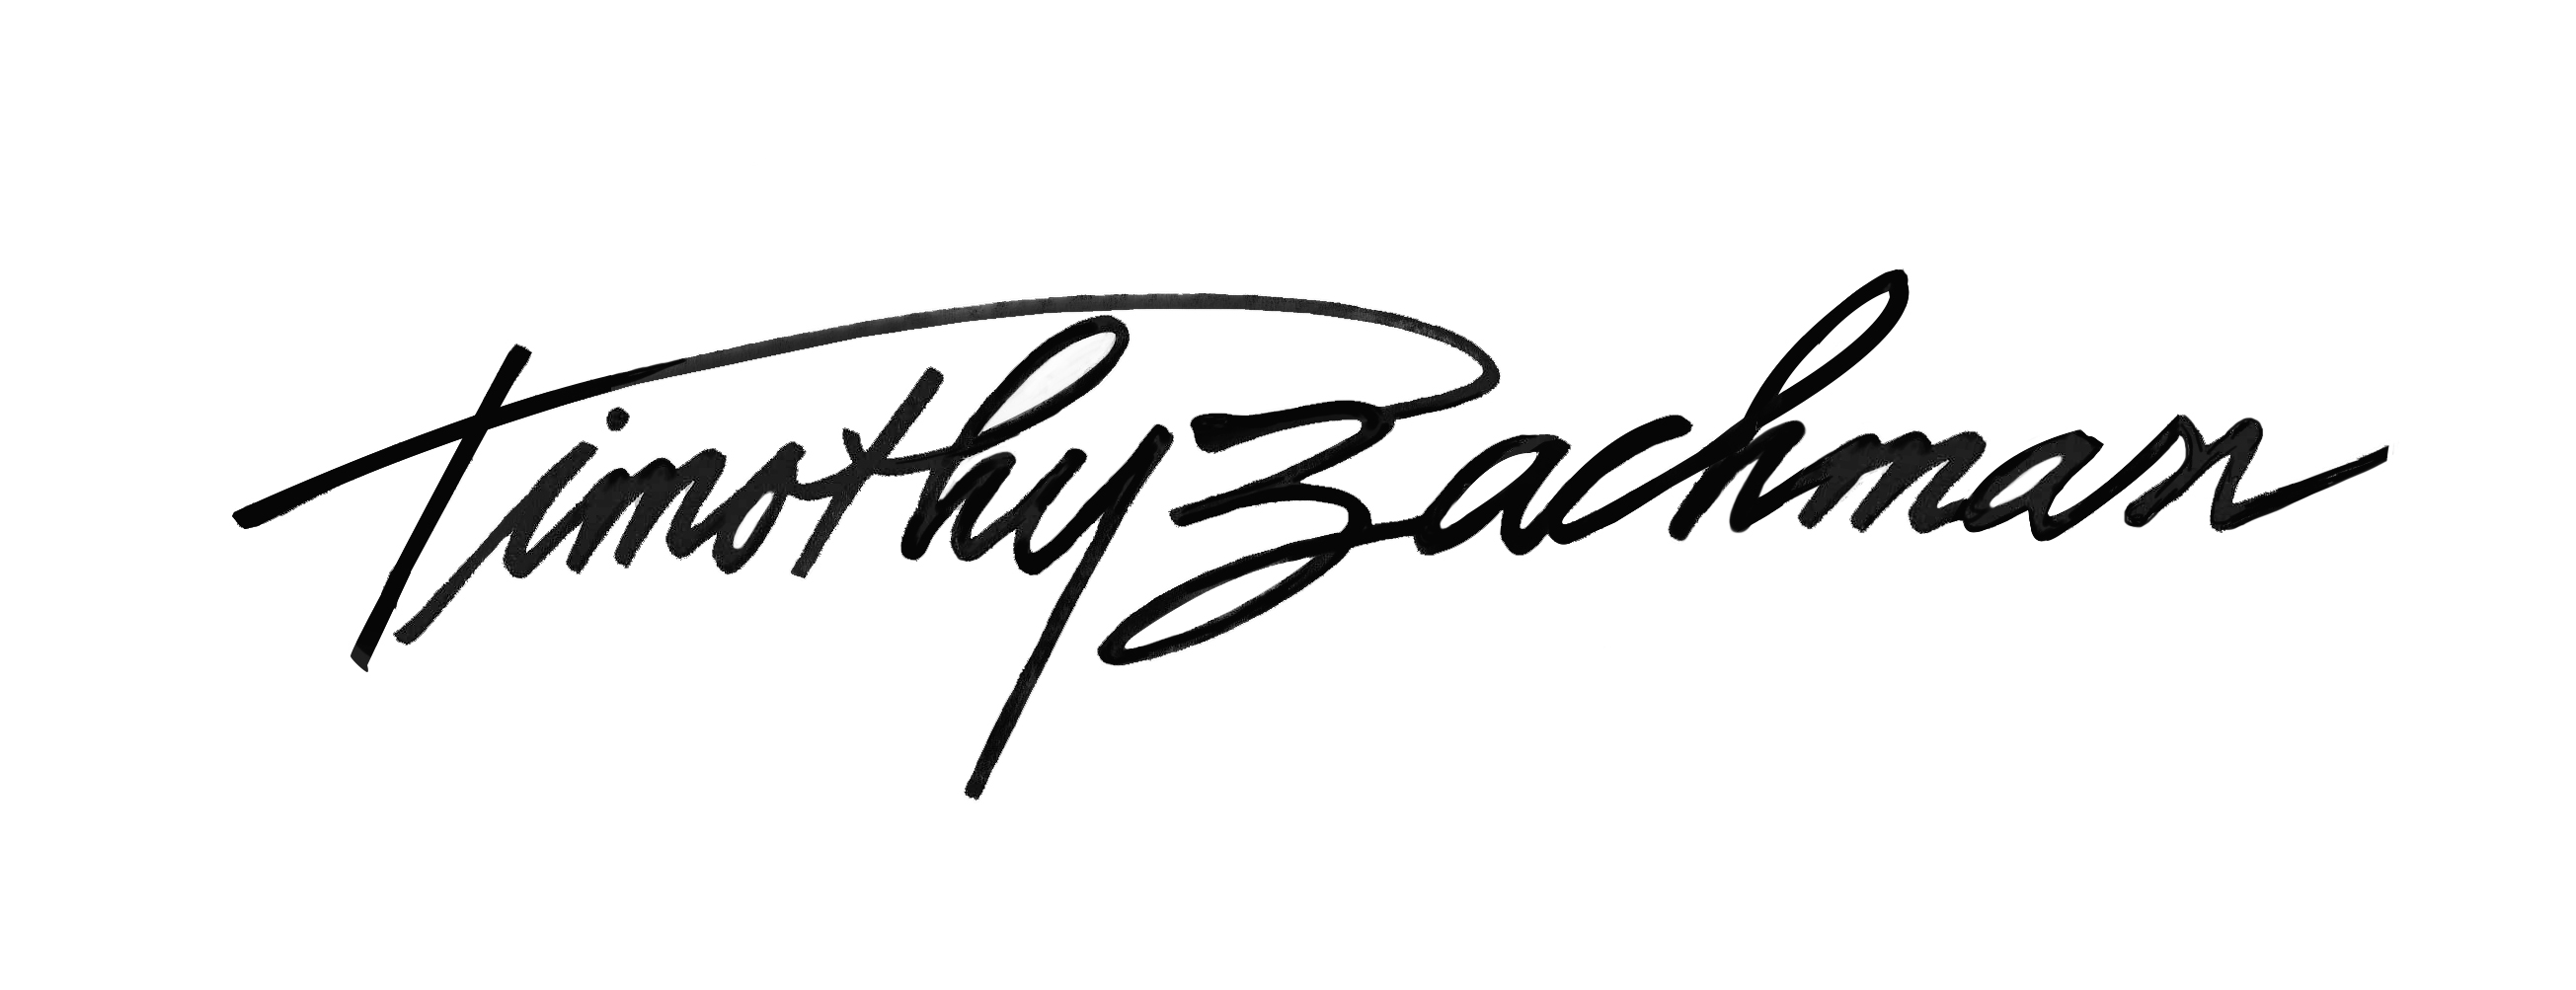 Timothy Bachman's Signature